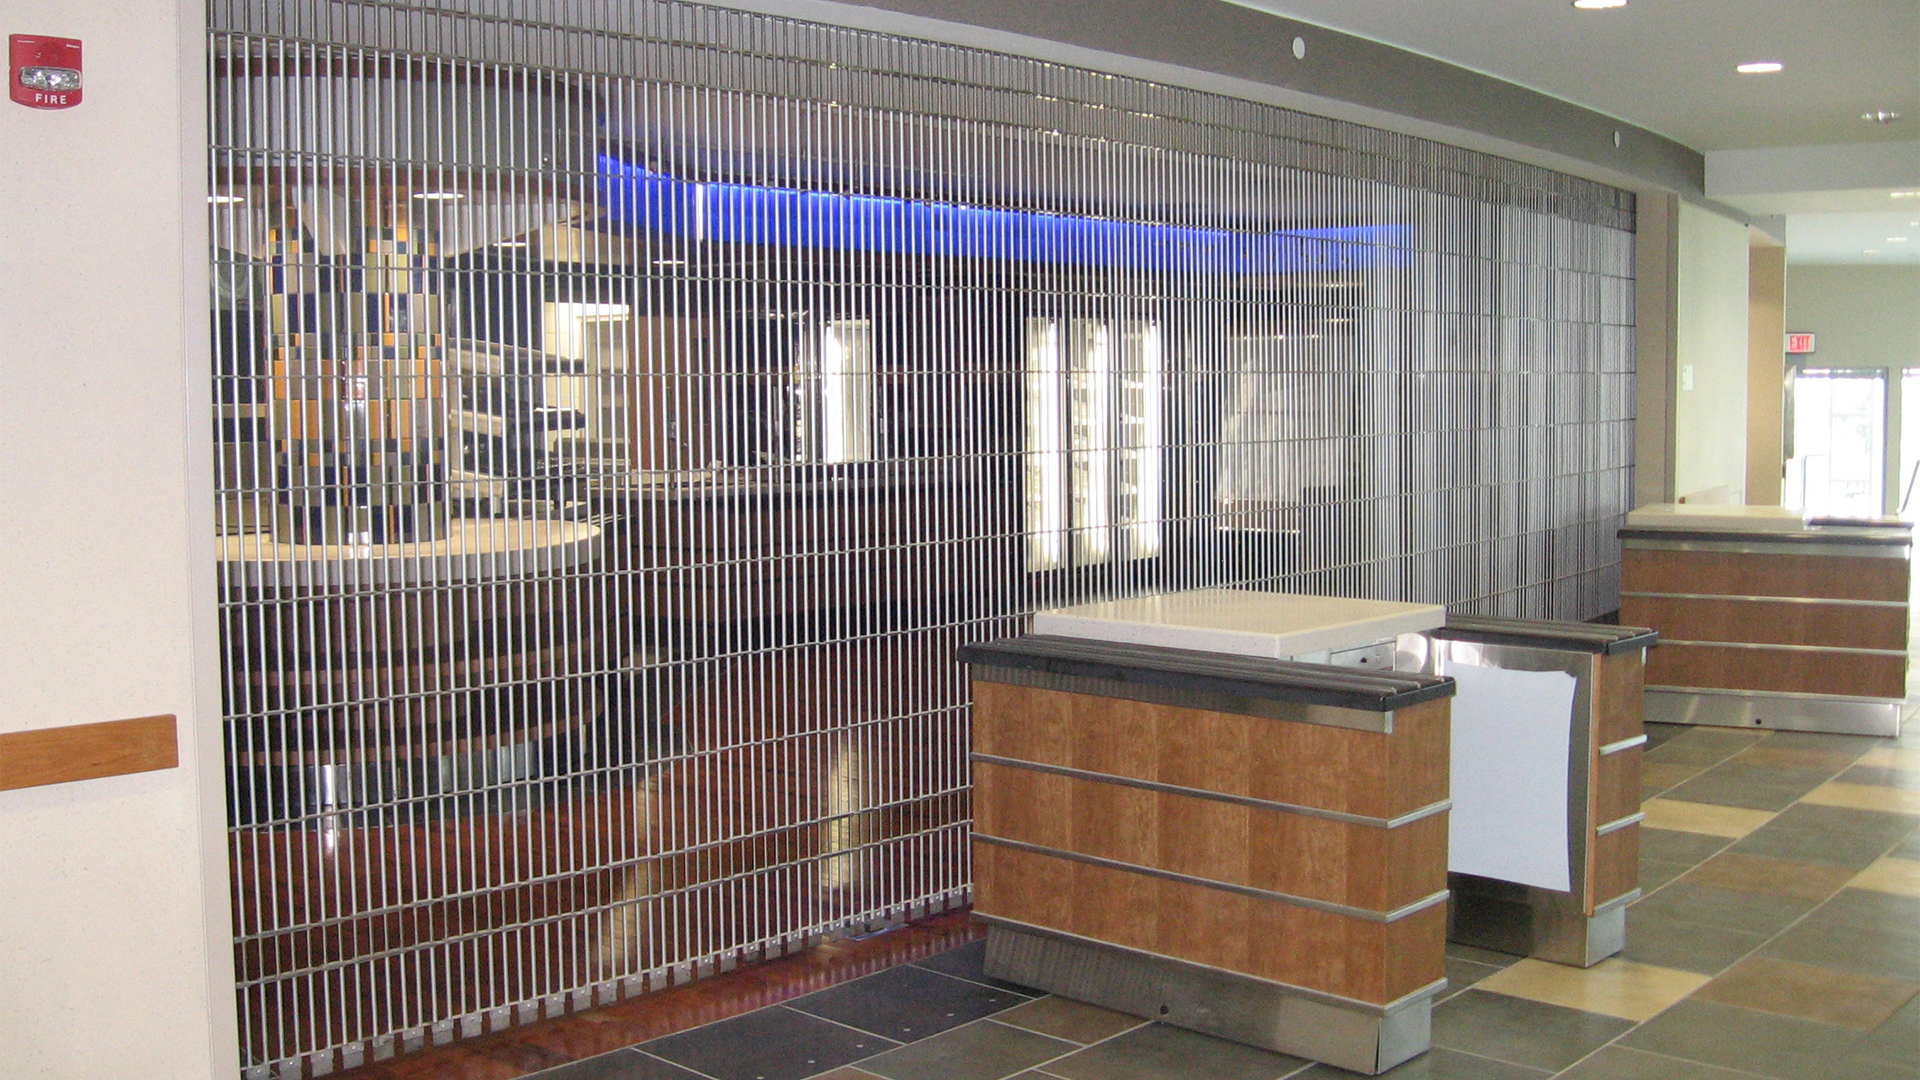 McKeon's SC3000 Side Coiling Security Grille